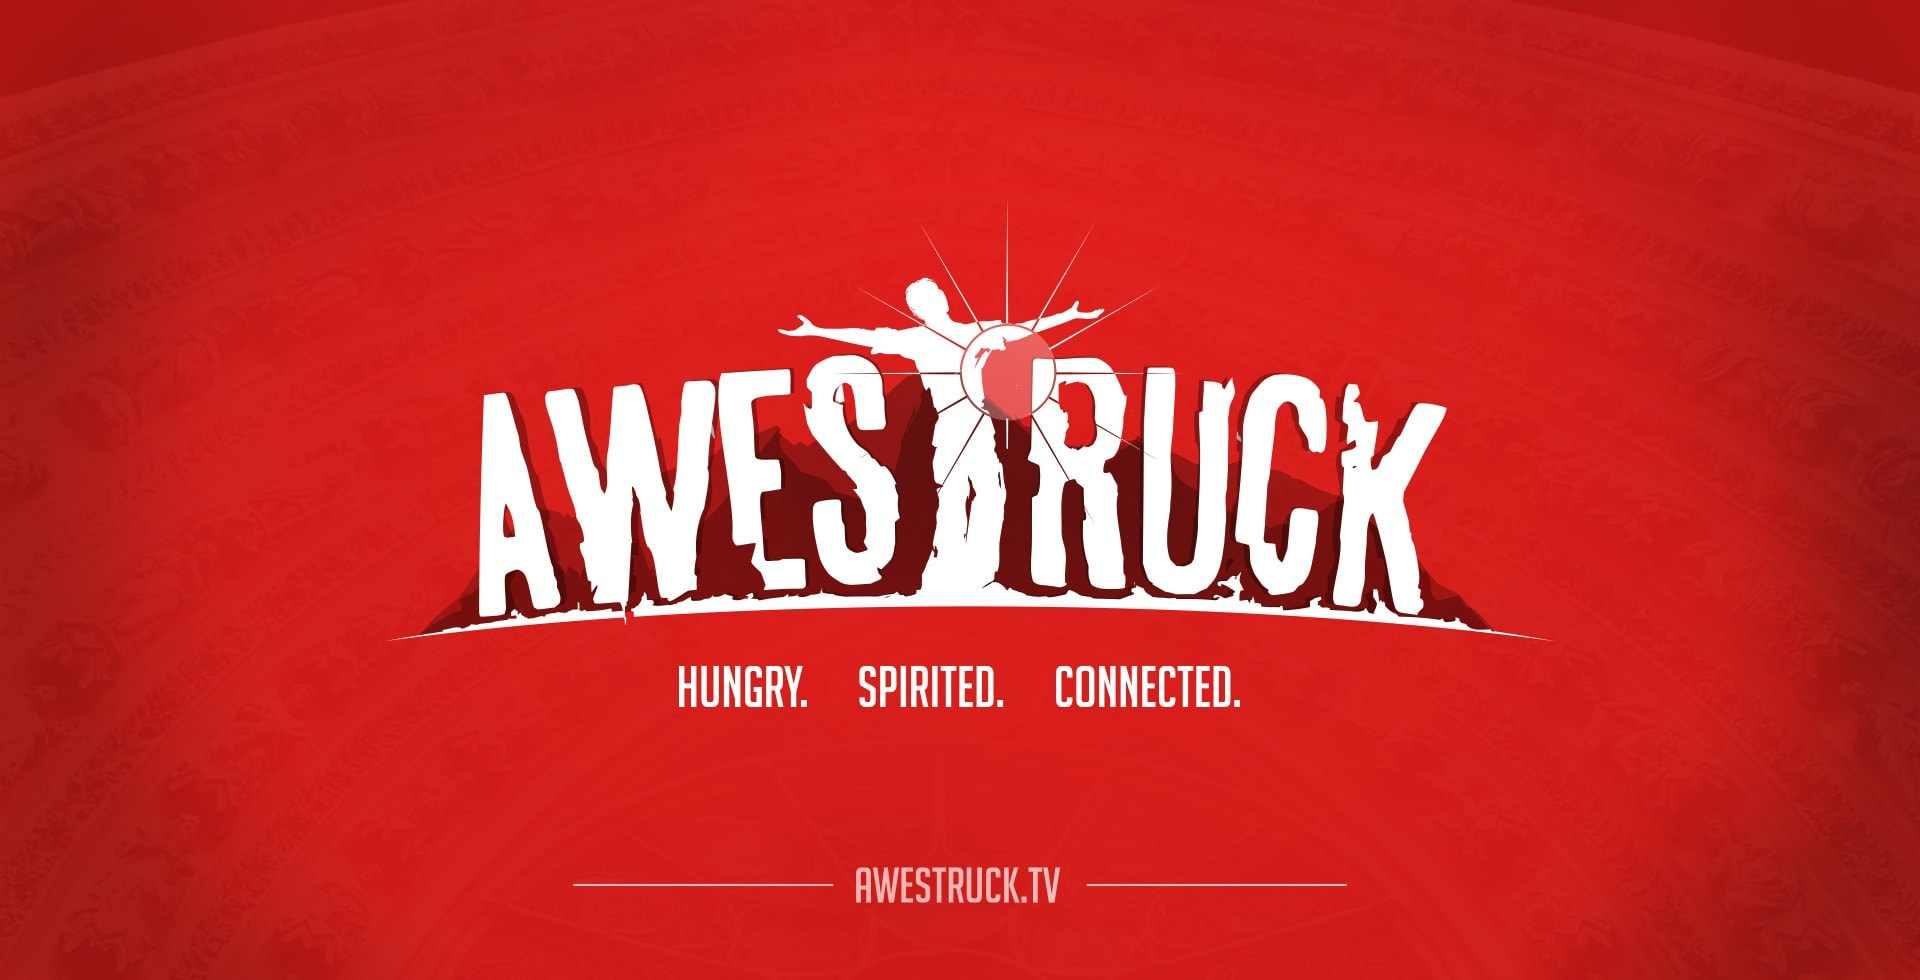 awestruck-header1